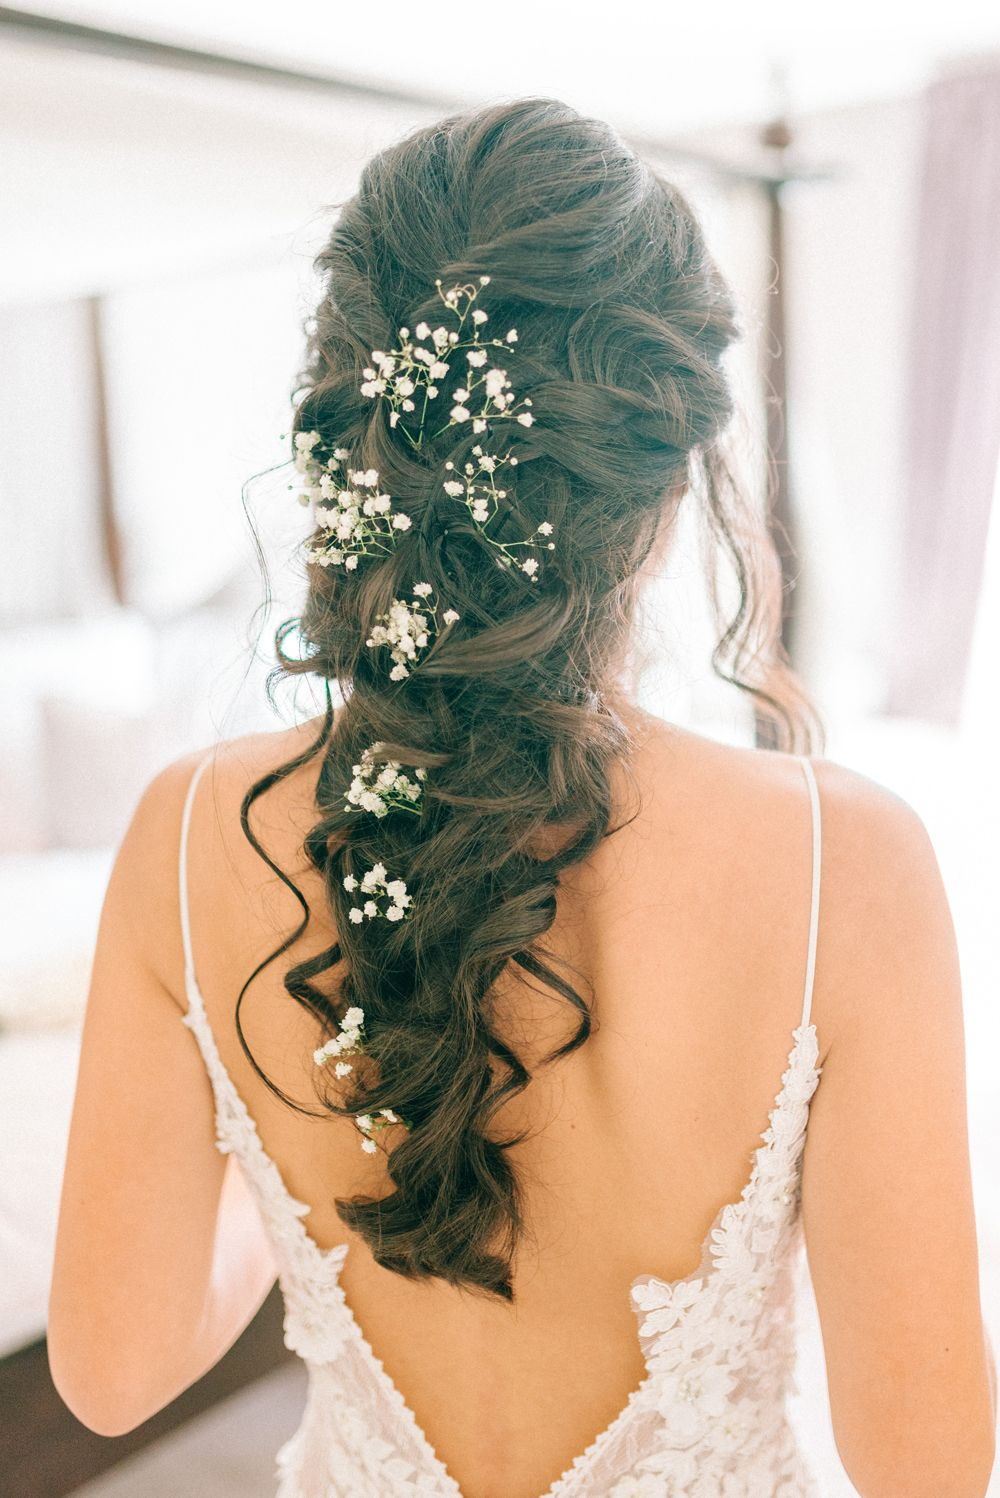 Bridal hair braid with gypsophila godwick hall wedding with bride bridal hair braid with gypsophila godwick hall wedding with bride in anna georgina bridesmaids in junglespirit Choice Image